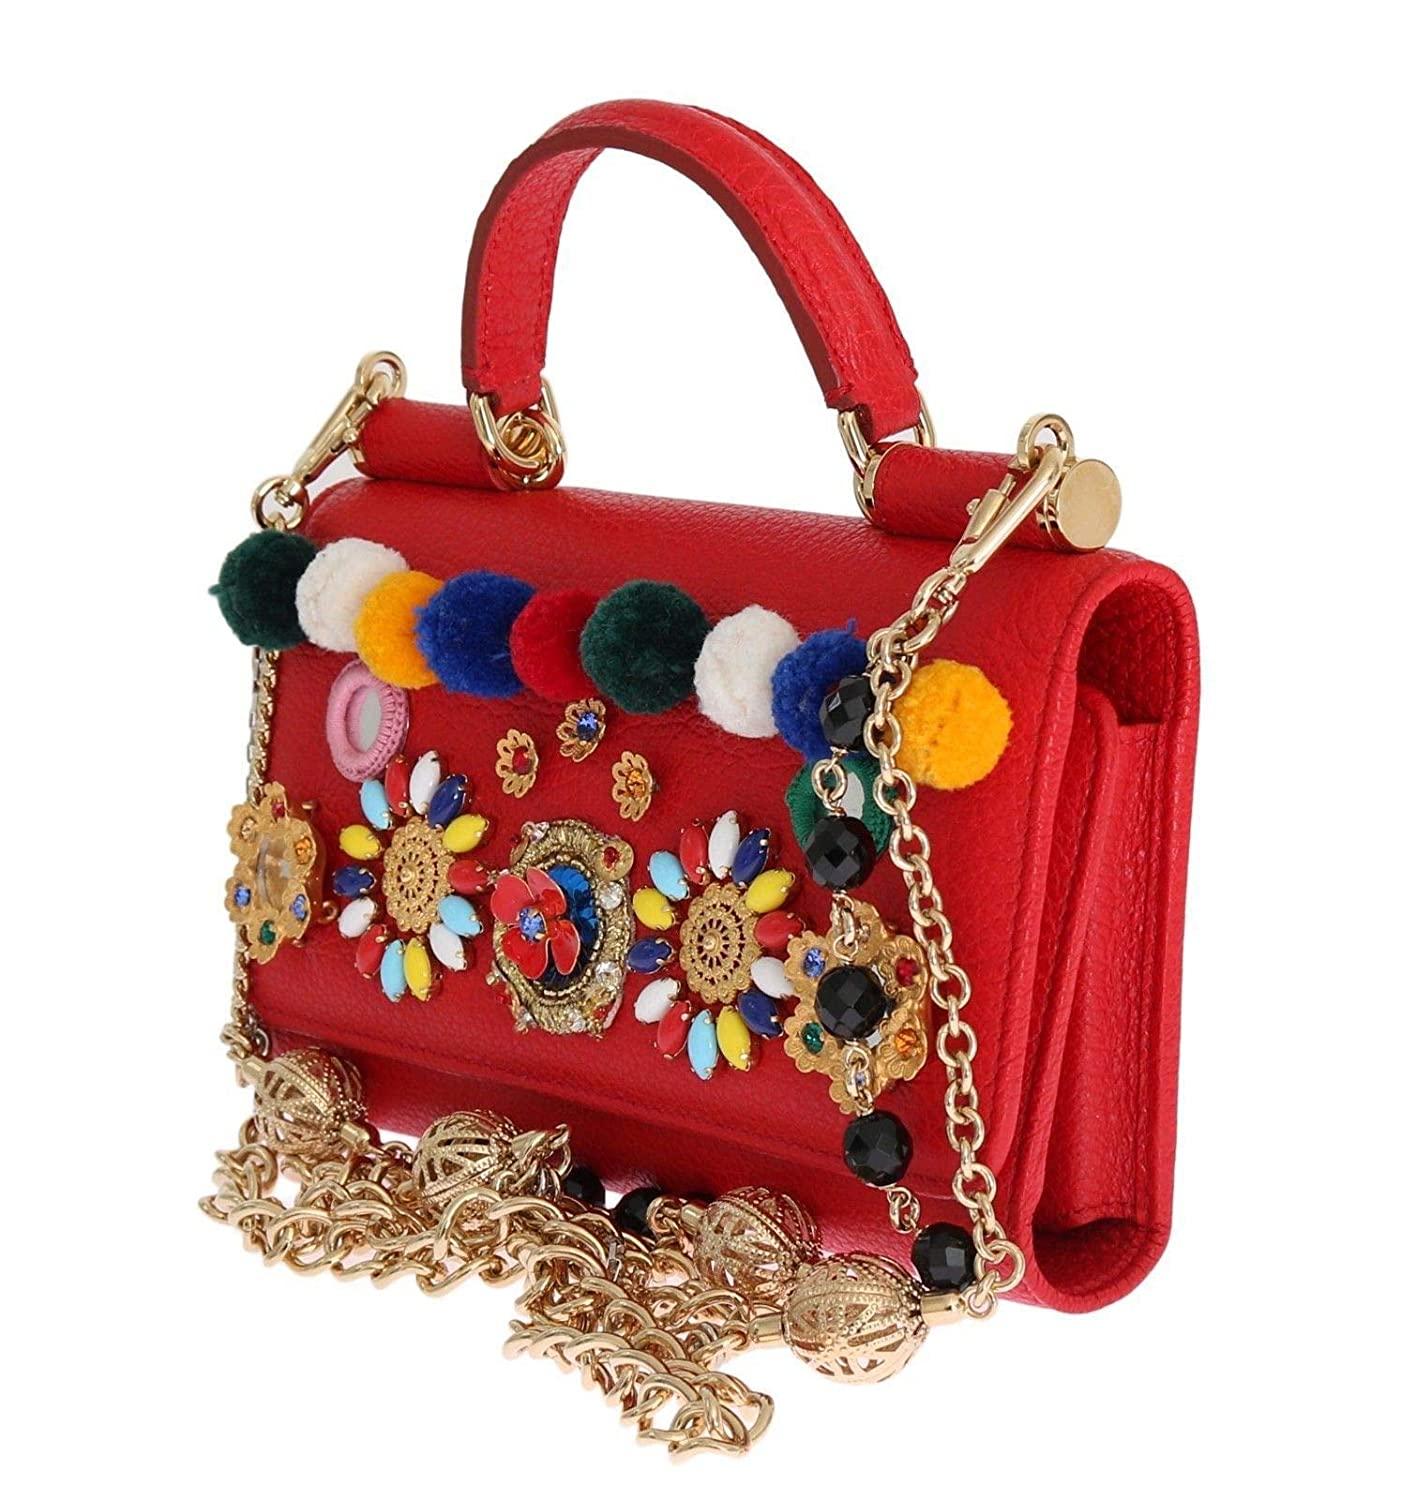 dc8ef356d87e Dolce   Gabbana - Purse VON Red Leather Crystal Carretto POM POM   Amazon.co.uk  Shoes   Bags